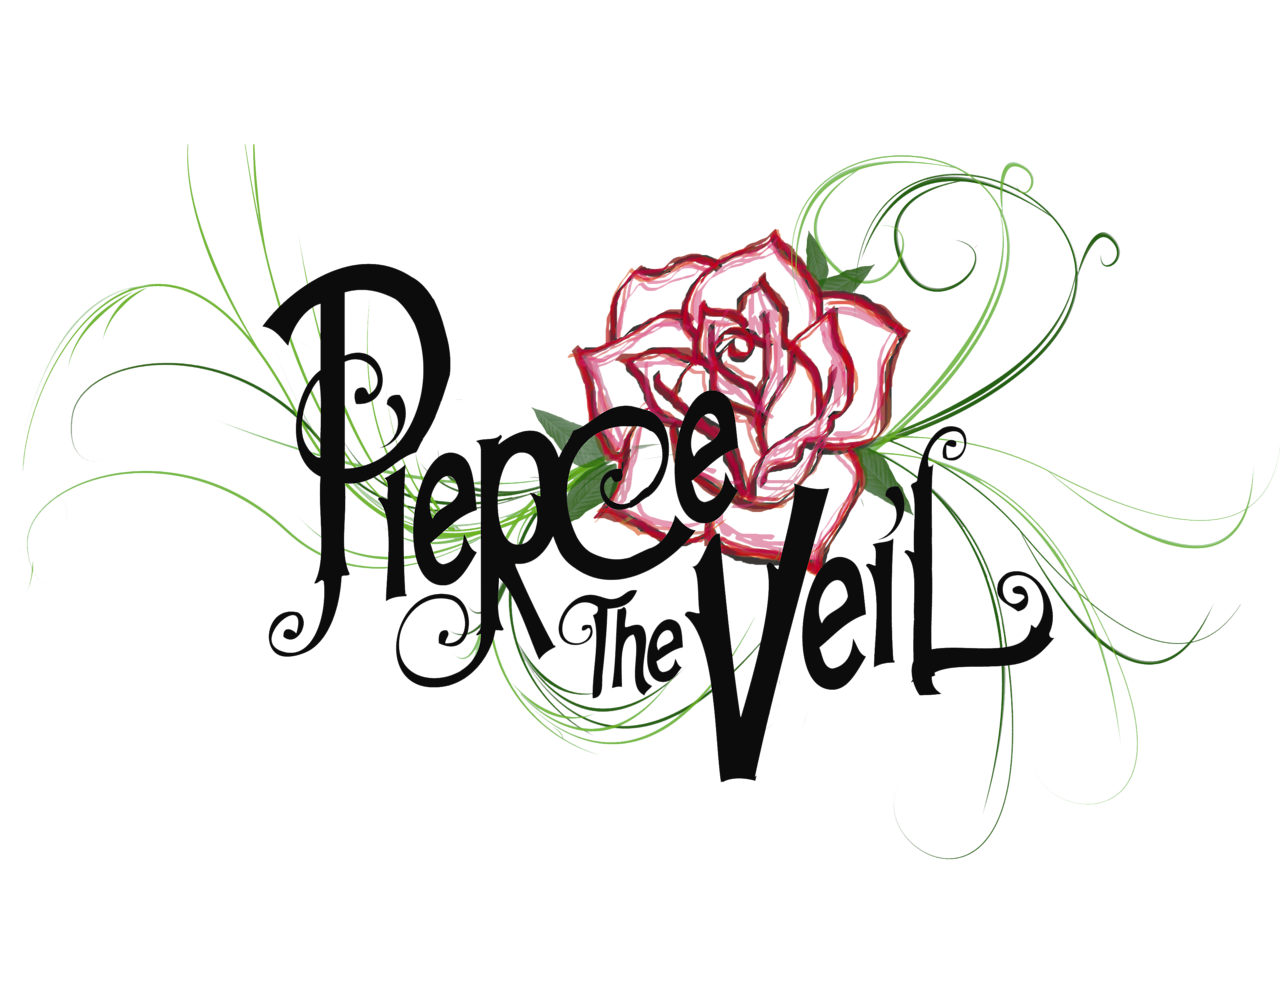 pierce the veil logo pierce the veil logo transparent